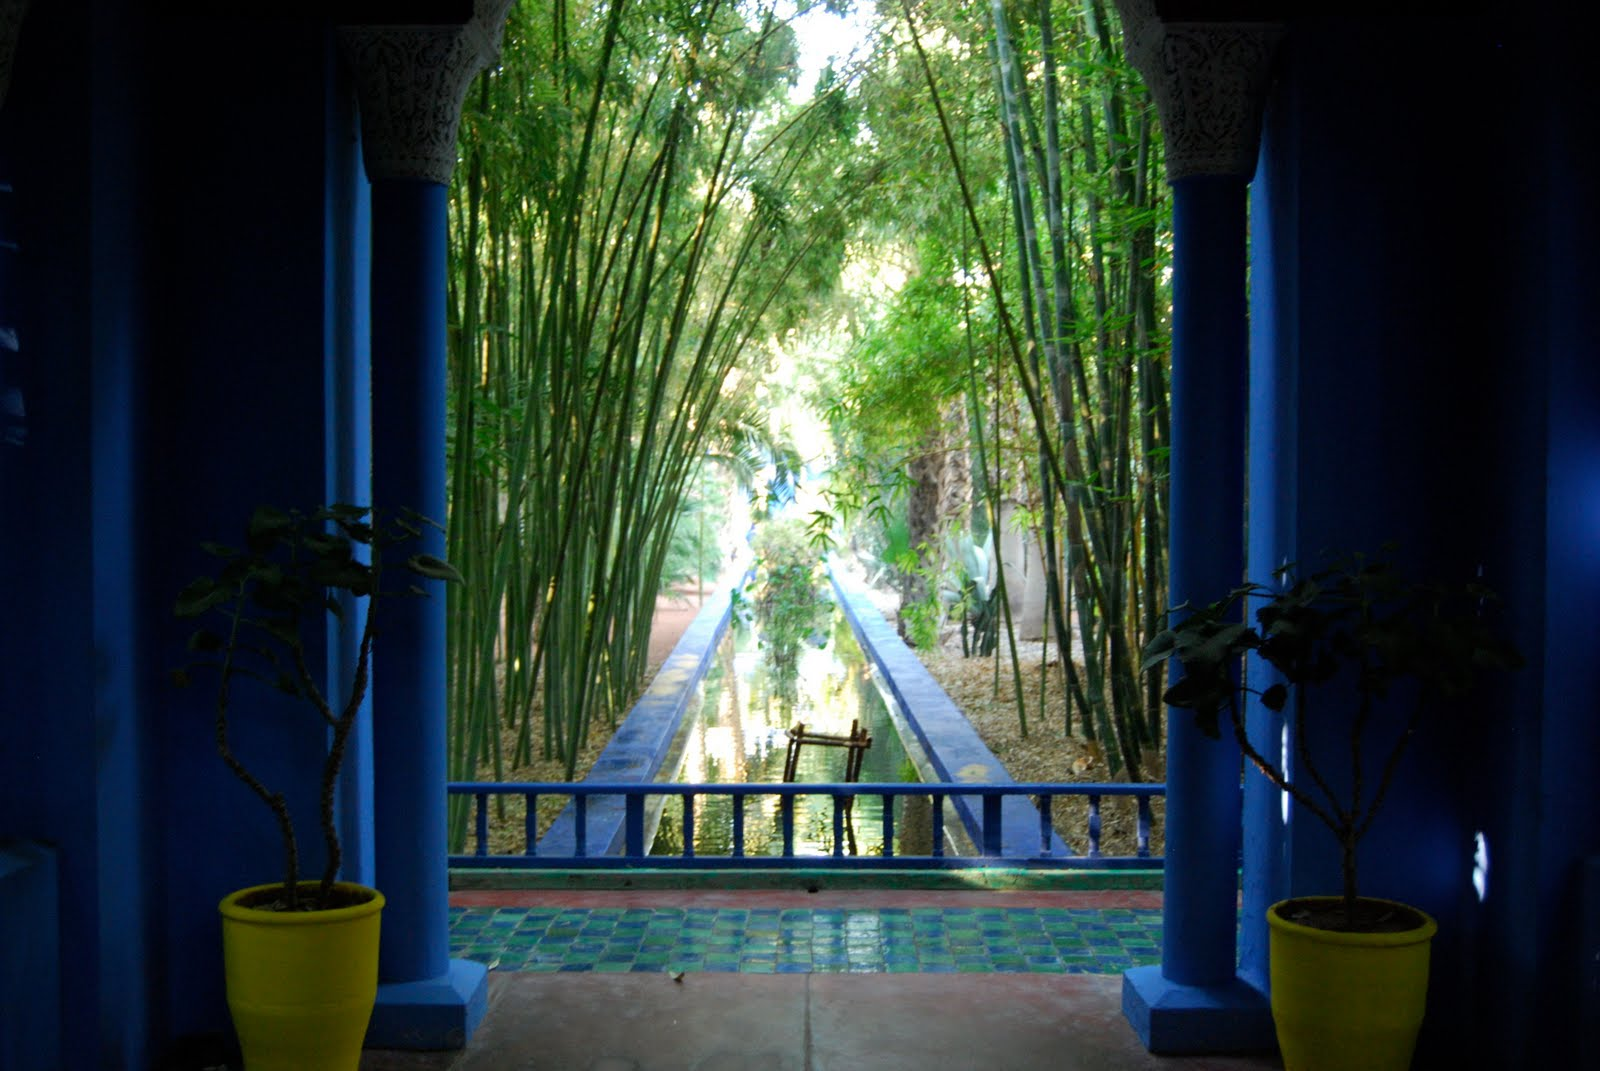 The josh also rises marrakesh jardin majorelle for Jardin yves saint laurent